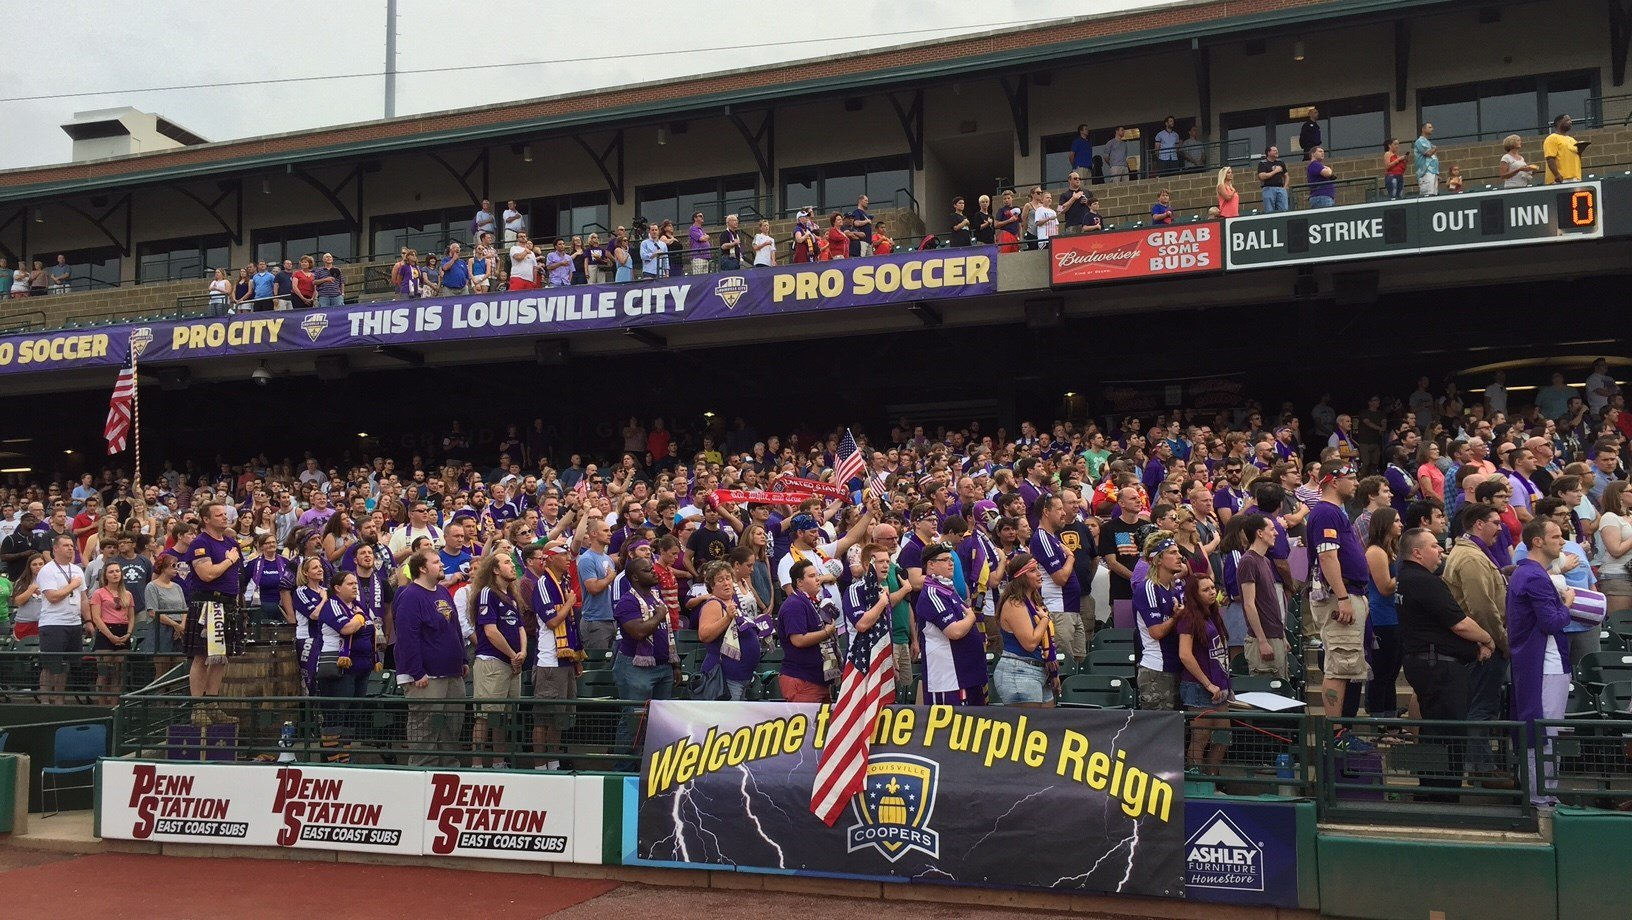 A crowd of 8,254 marks Louisville's first sellout crowd for soccer at Louisville Slugger Field.